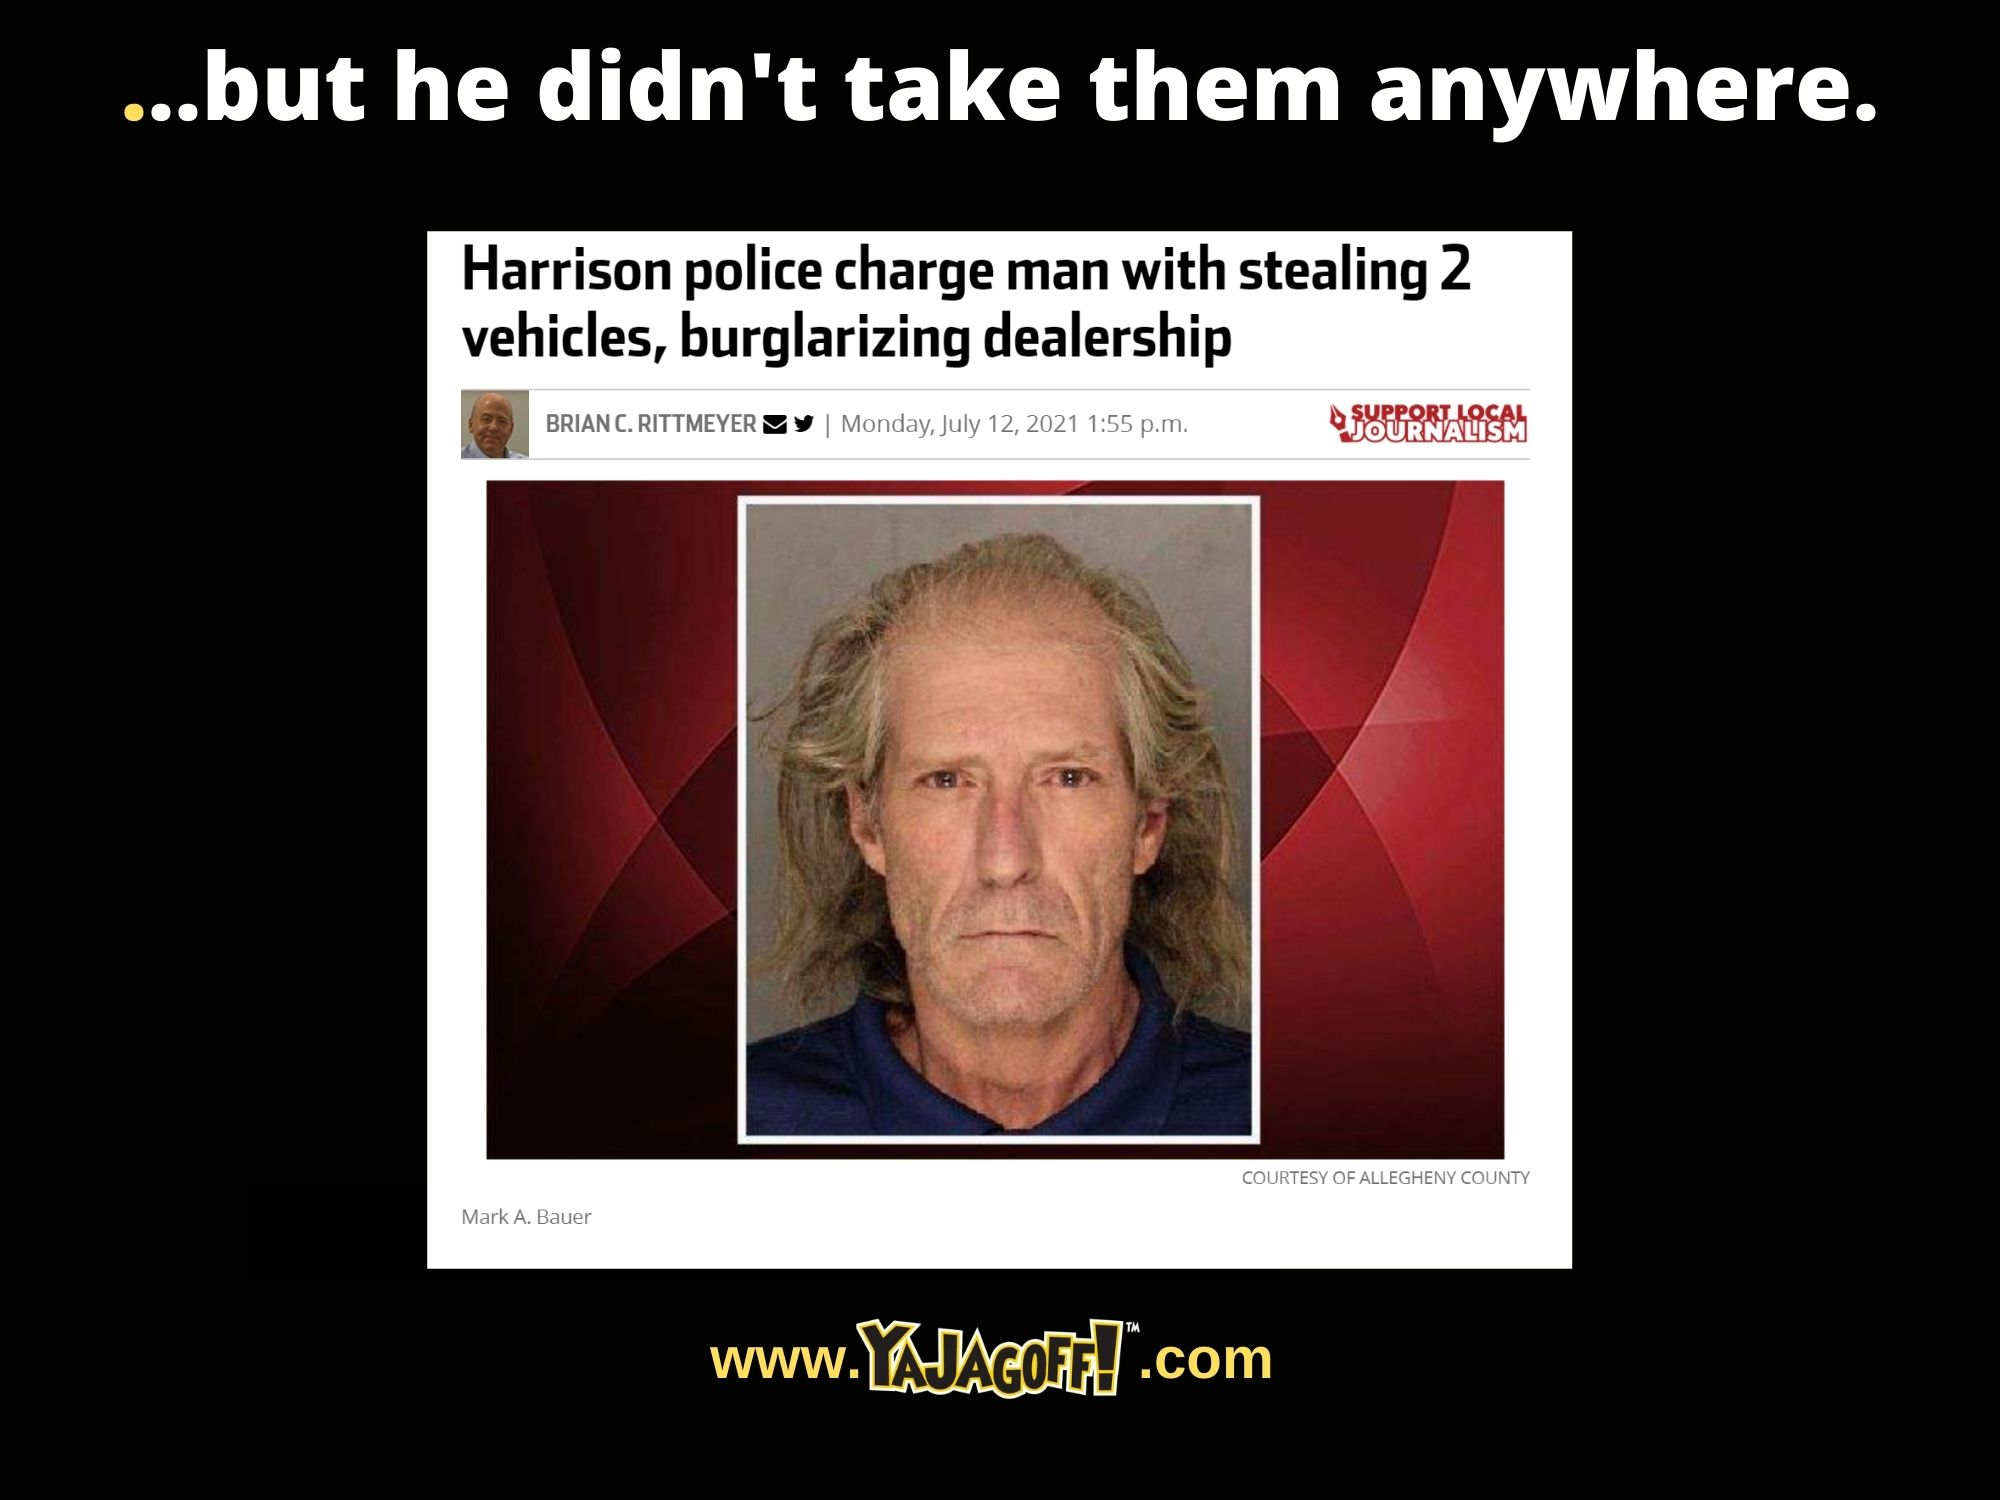 Care theif is a dumb criminal